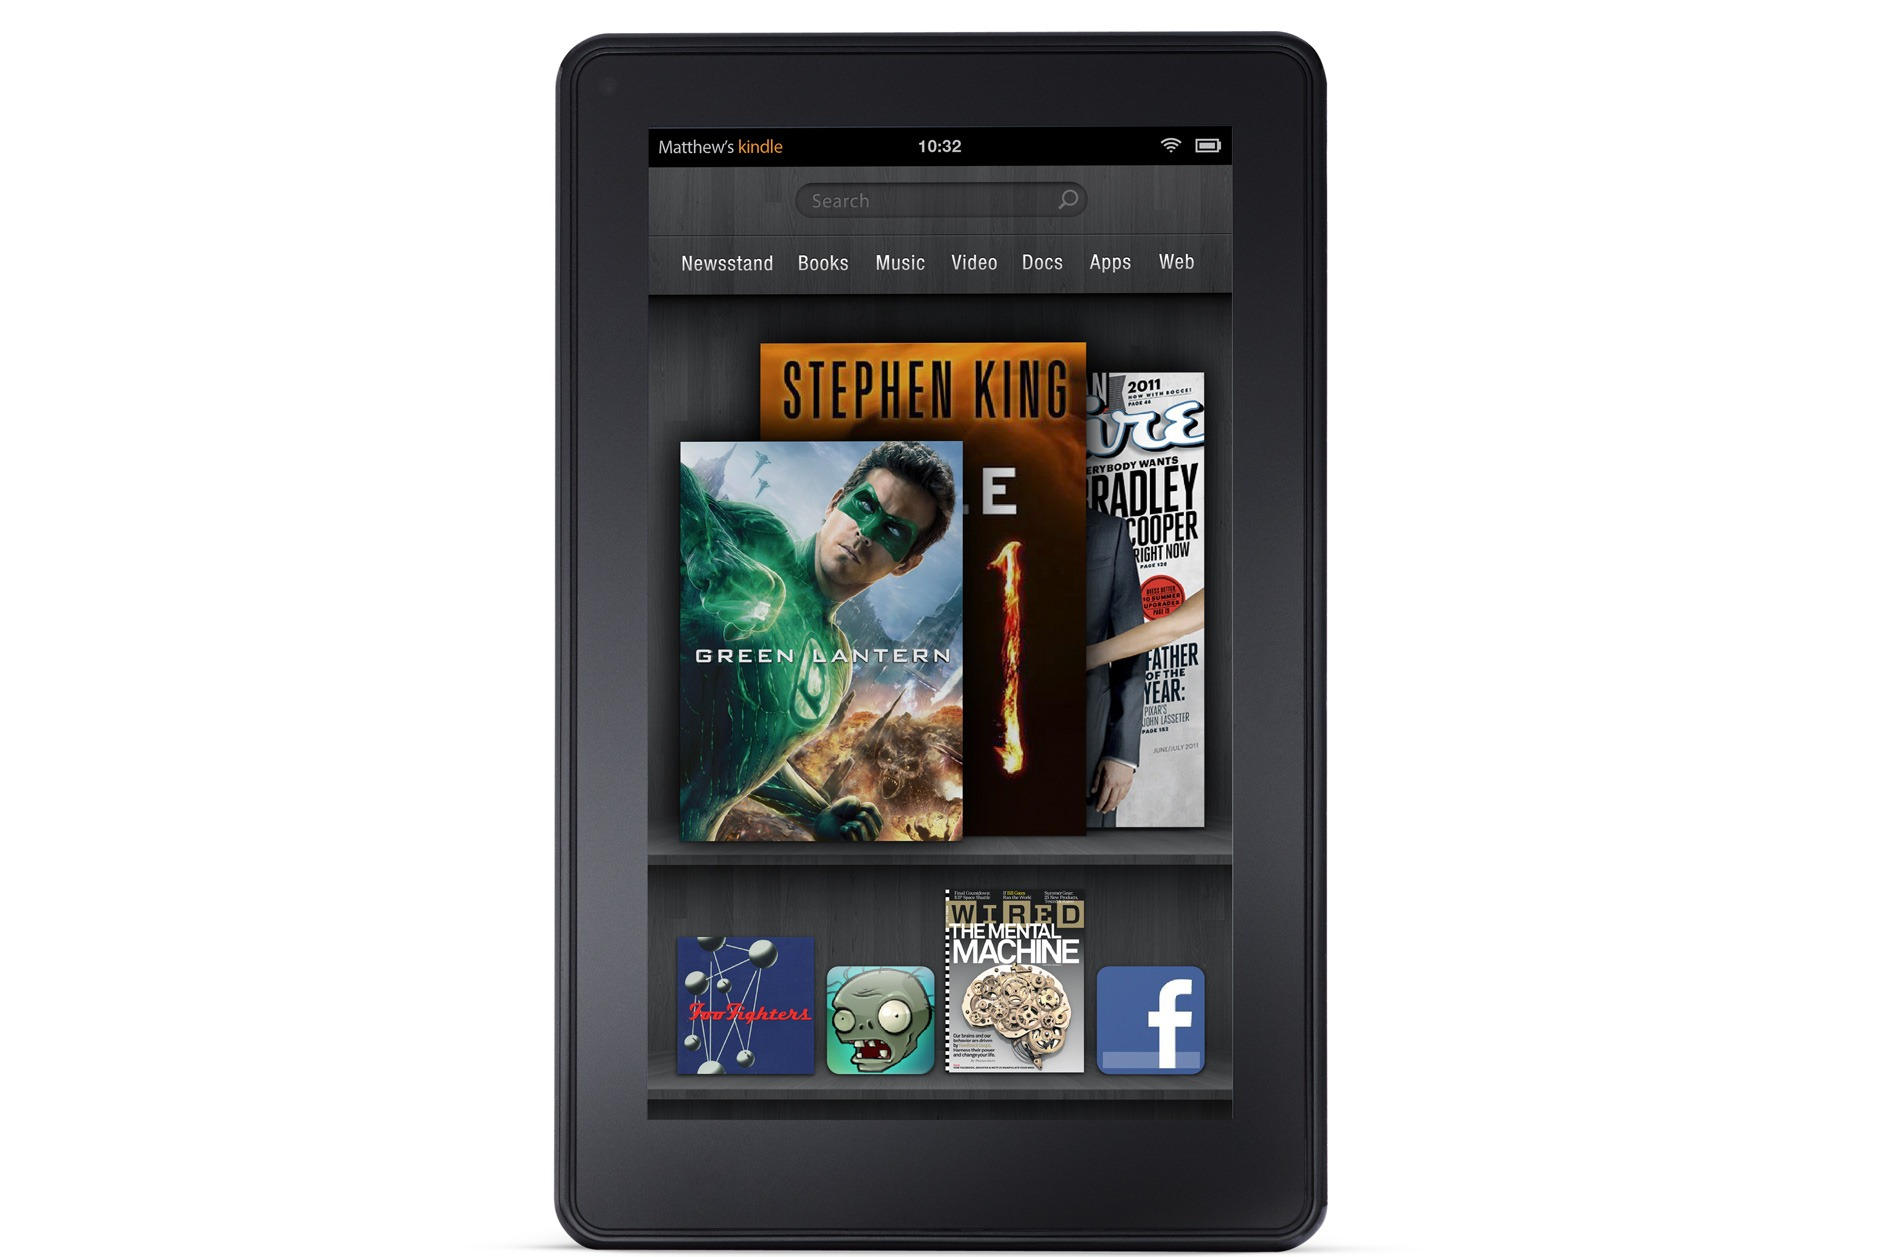 Phone Amazon Kindle For Android Phone amazon kindle fire archives android police news apps home 12